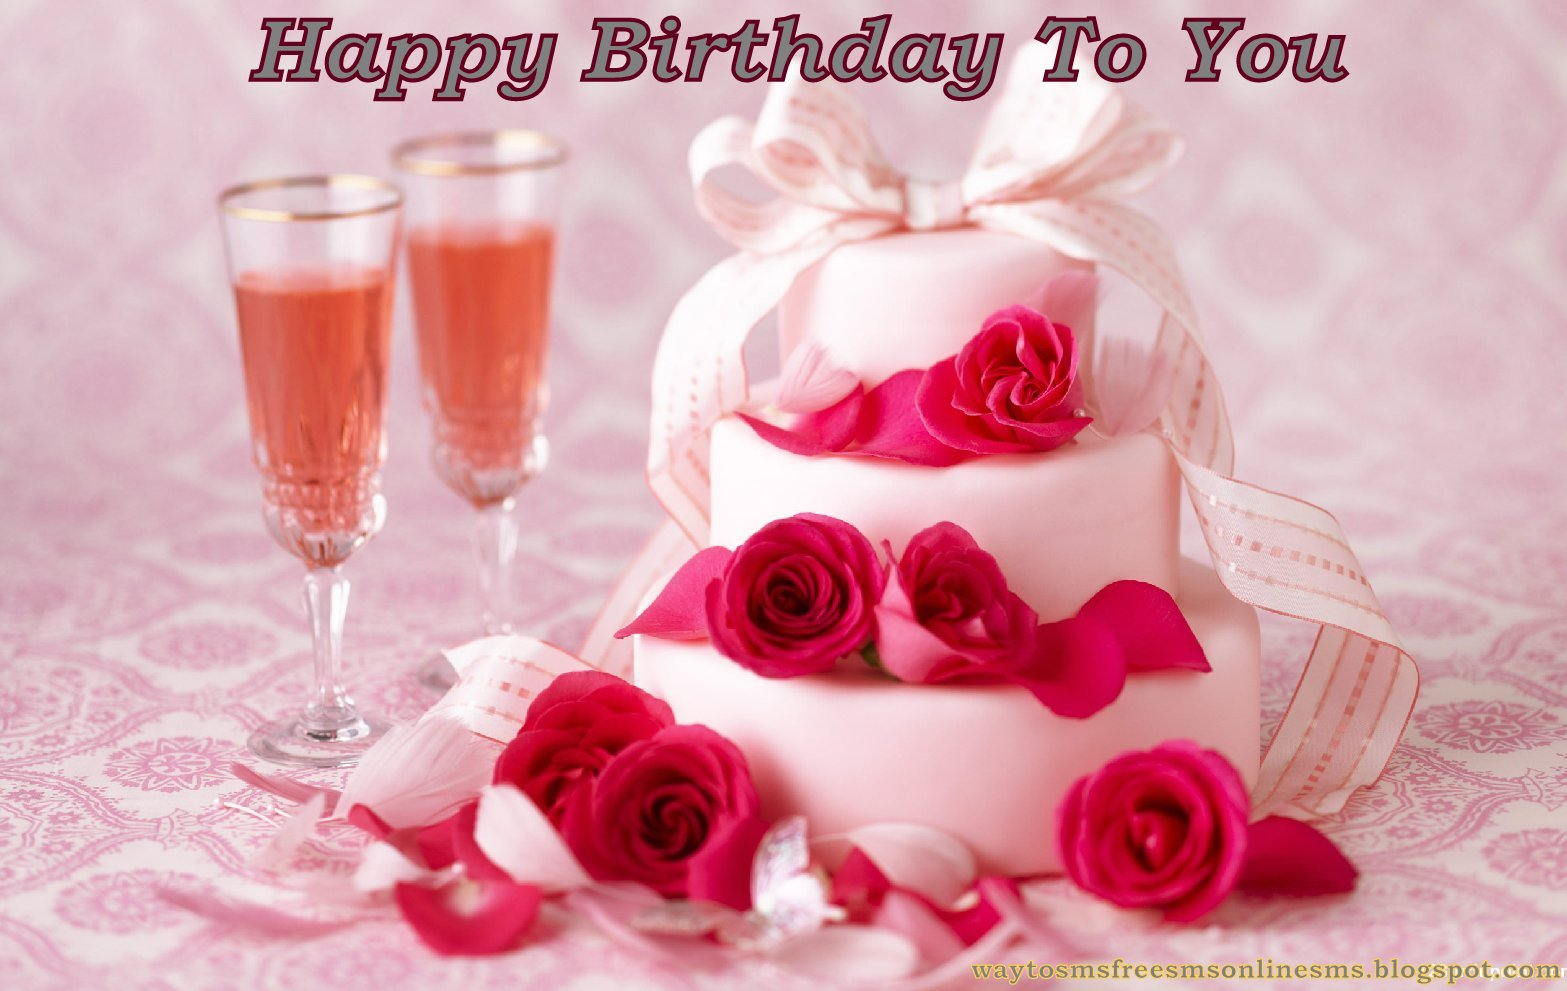 The Best Way To Online Free Sms Happy Birthday Greetings